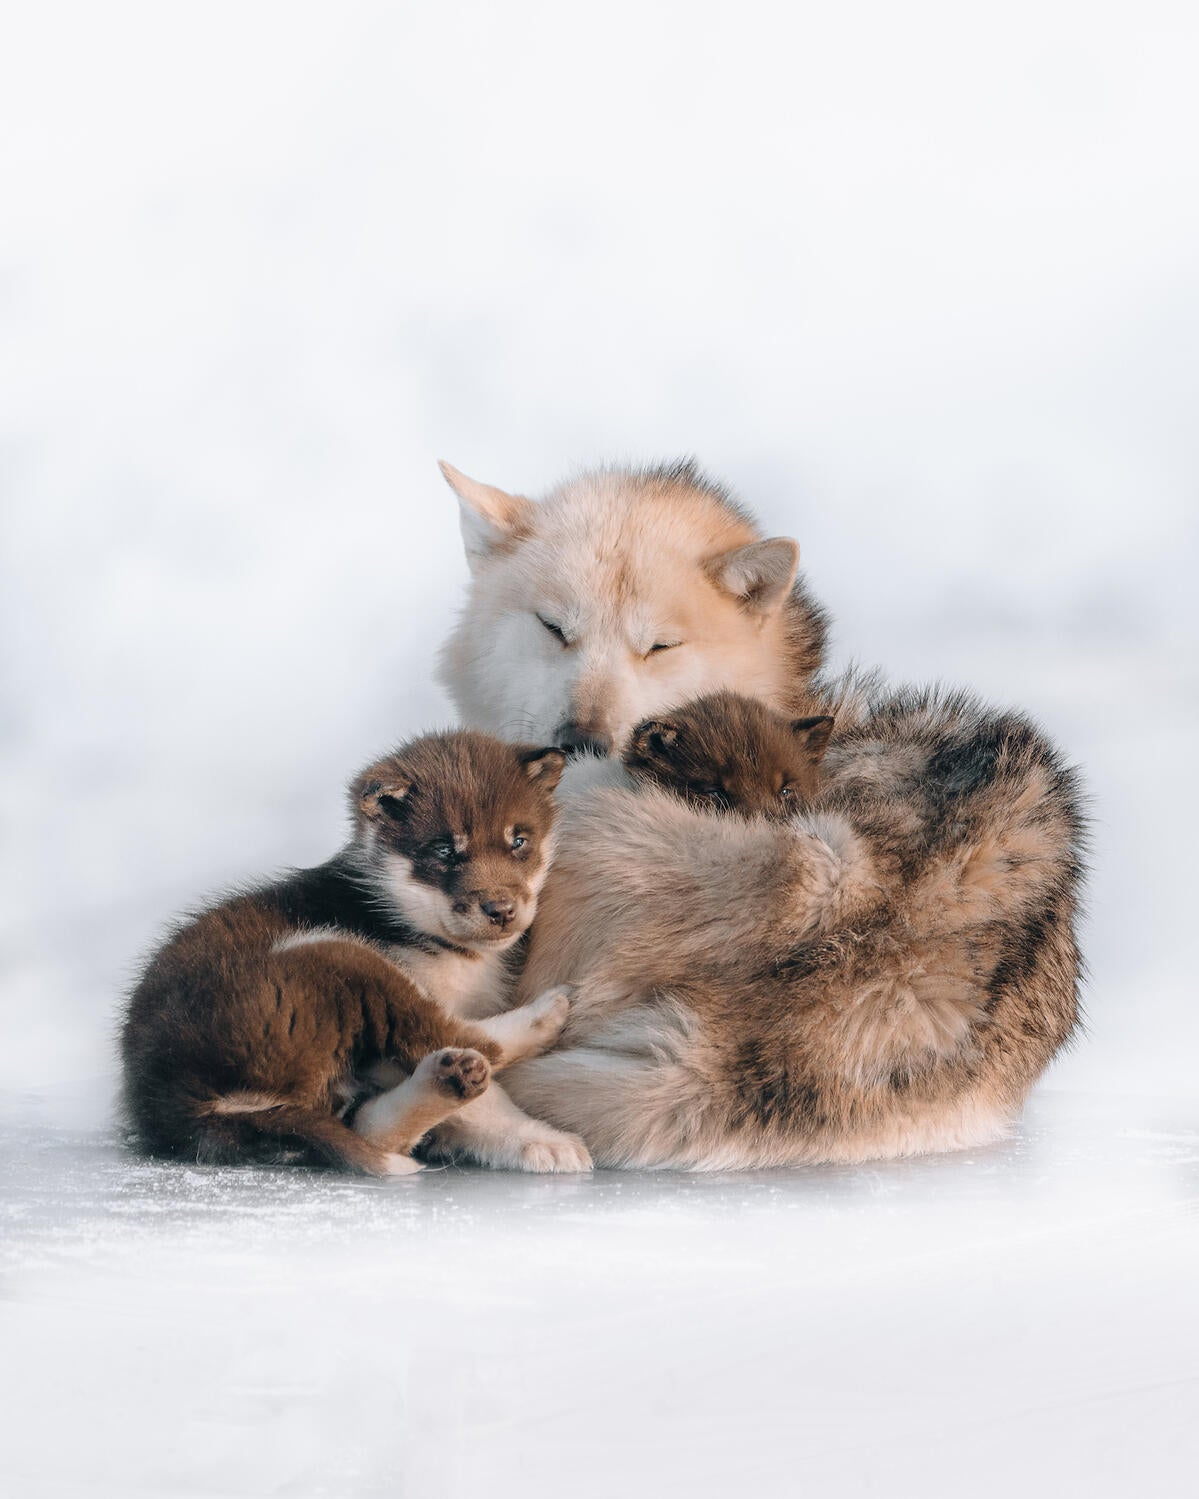 Photo Of The Day: A Sled Dog Snuggle Session In Sub-Zero Temps